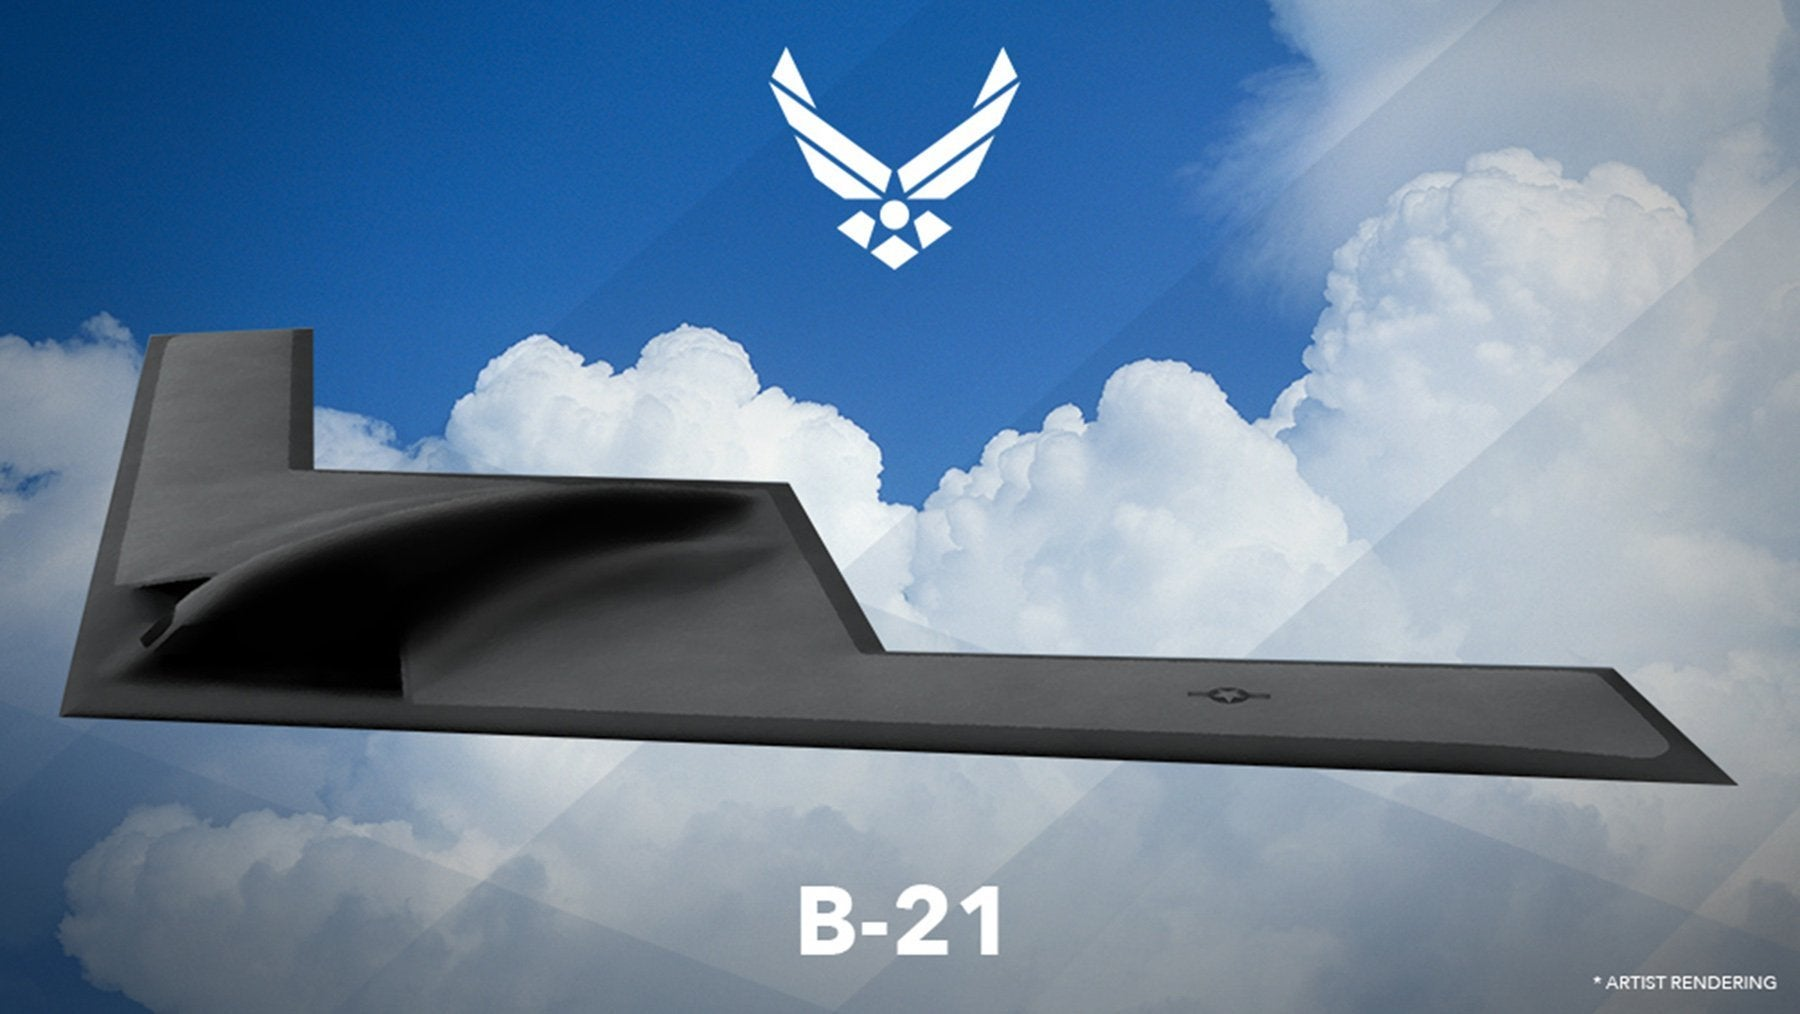 The US Air Force Wants Suggestions For What to Name Their New Bomber